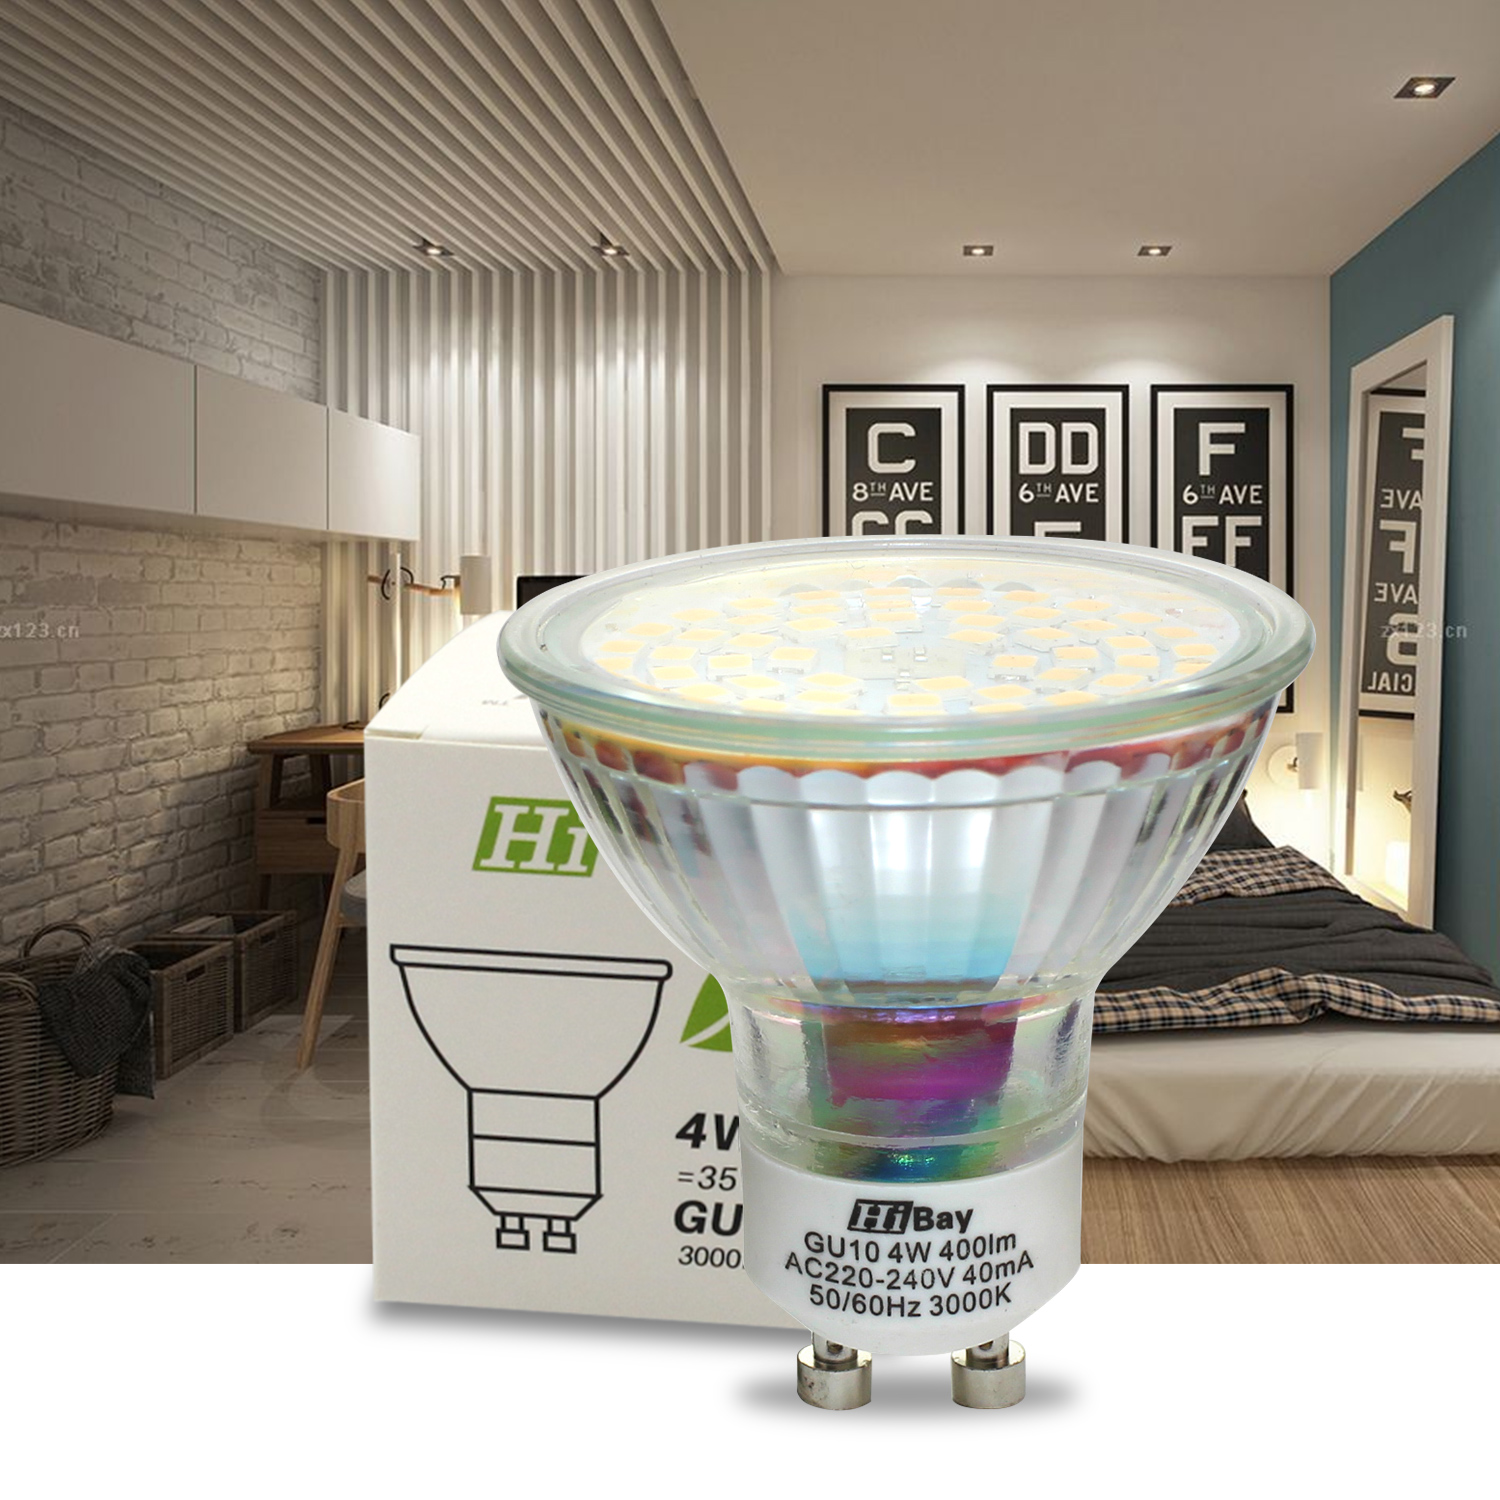 led gu10 4w 60smd warmwei neutralwei lampe birne strahler licht spot ebay. Black Bedroom Furniture Sets. Home Design Ideas